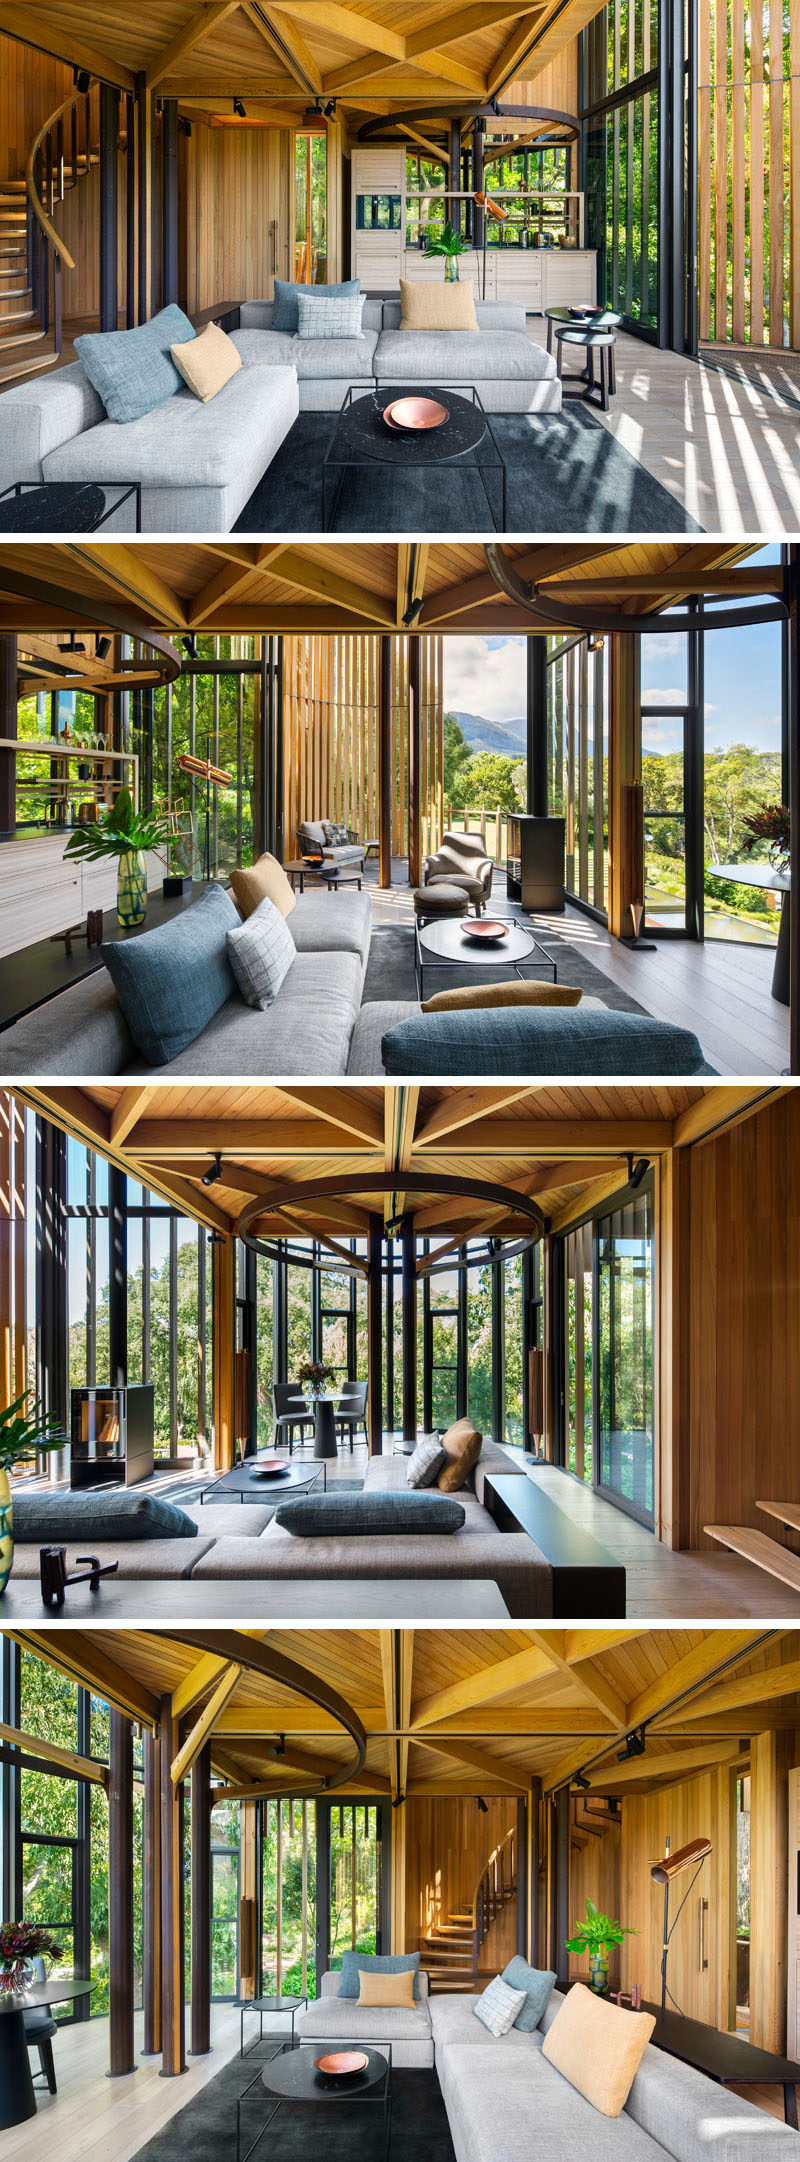 The first floor of this modern tree house is home to the living room that opens up to a balcony. Decorated in light greys and earth tones, this room compliments it's wood surroundings.